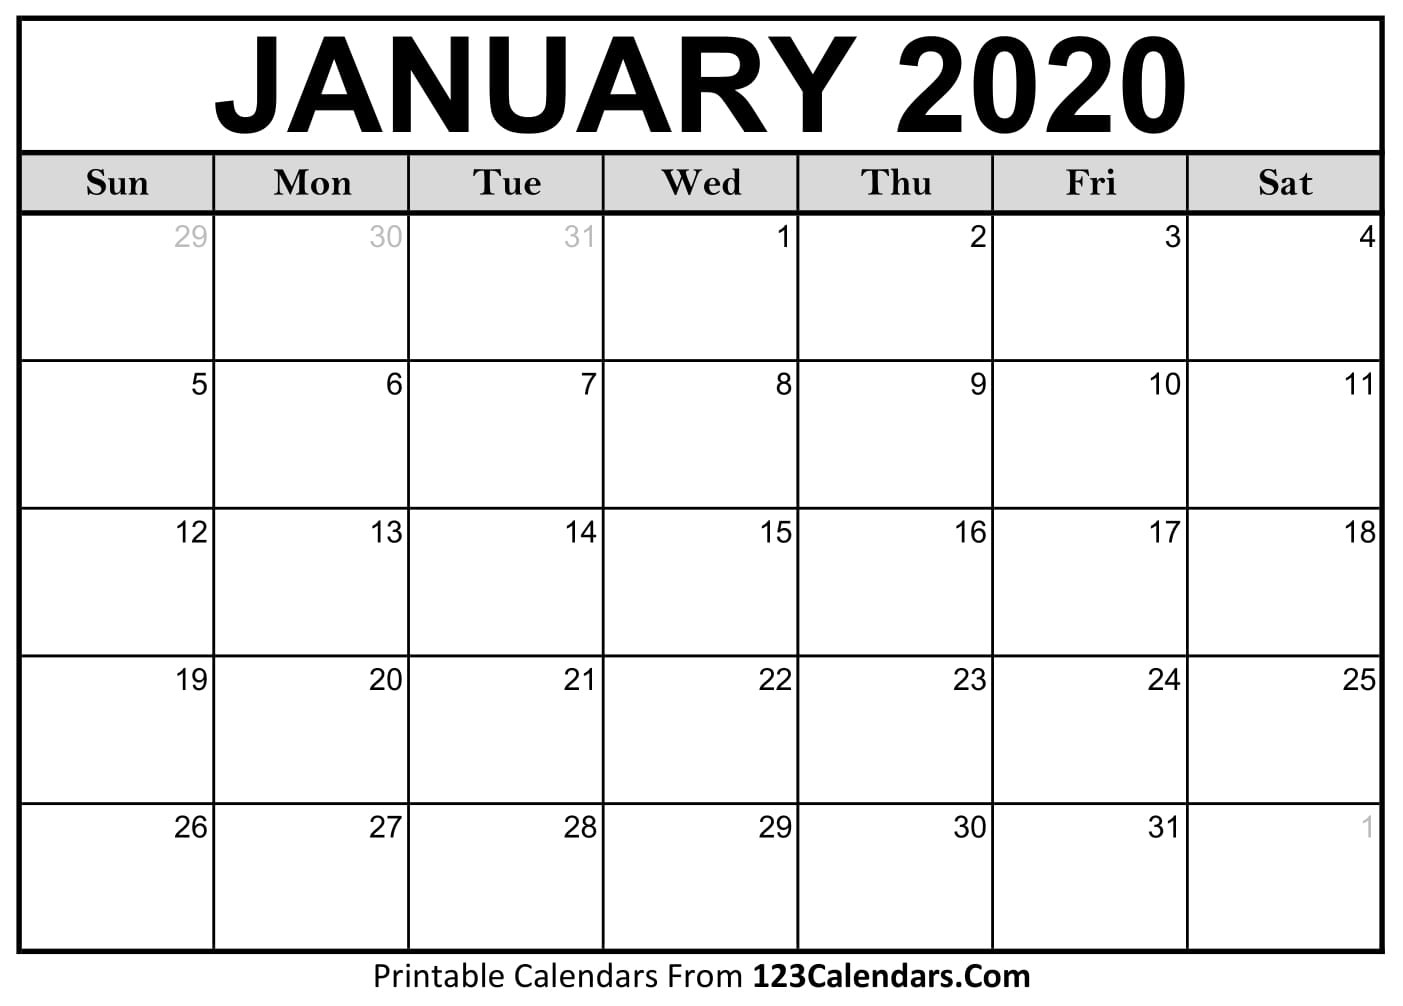 January 2020 Printable Calendar | 123Calendars-January Thru December 2020 Printable Monthly Calendar